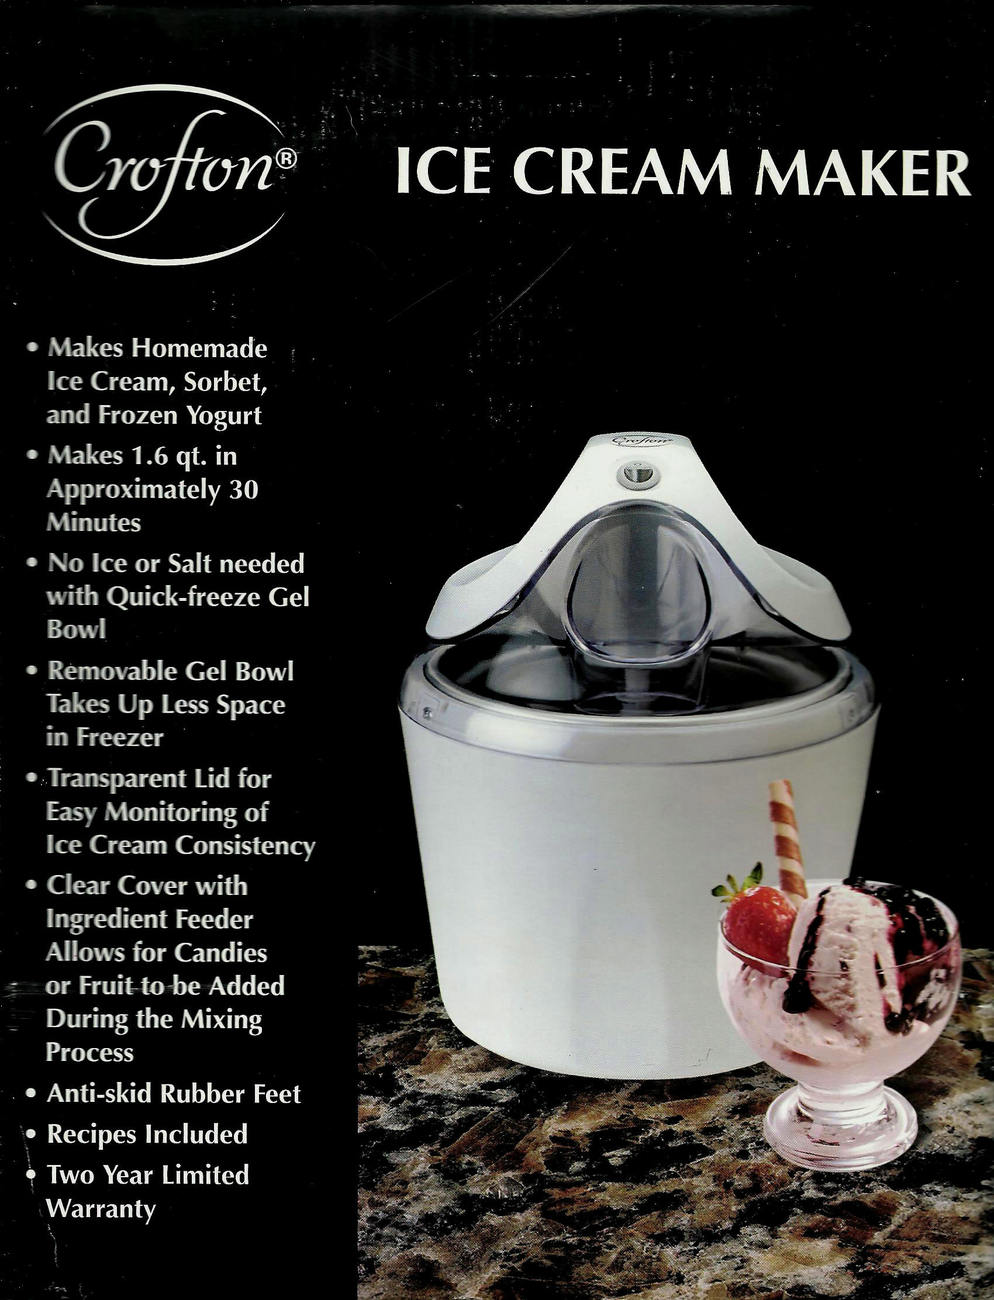 Crofton_ice_cream_maker_004